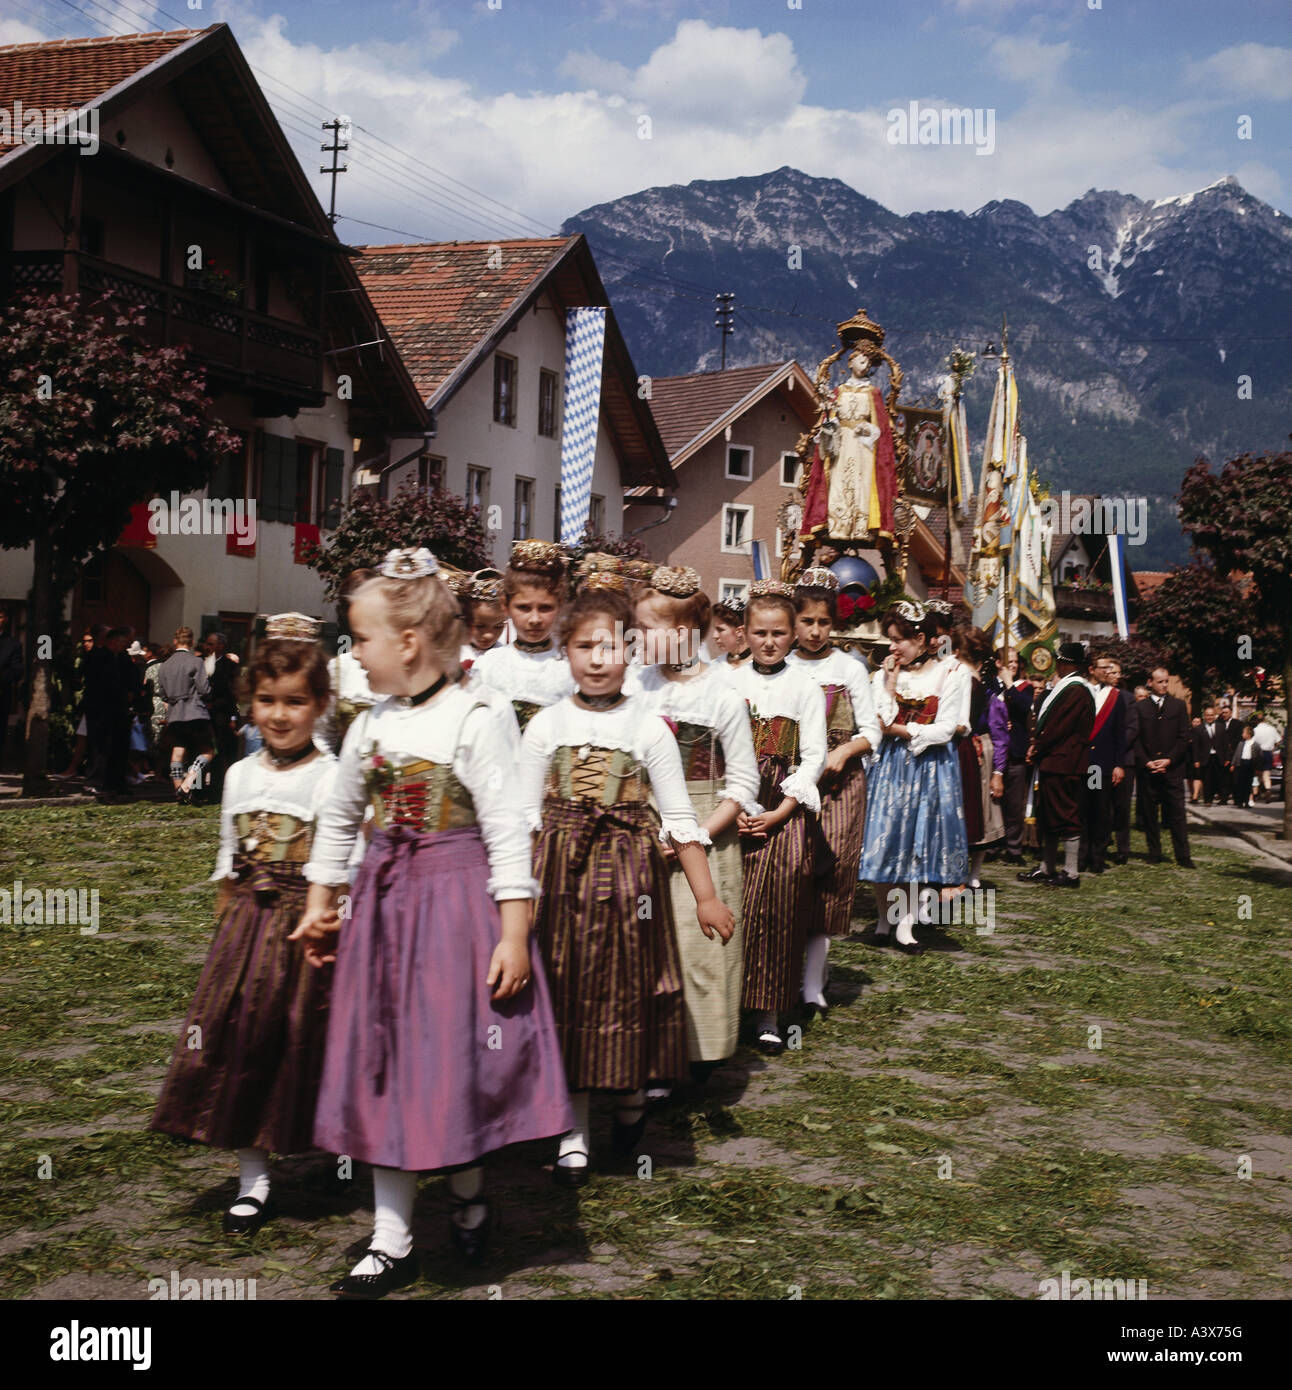 geography / travel, Germany, Bavaria, tradition / folklore, Feast of Corpus Christi, children in traditional costumes, - Stock Image